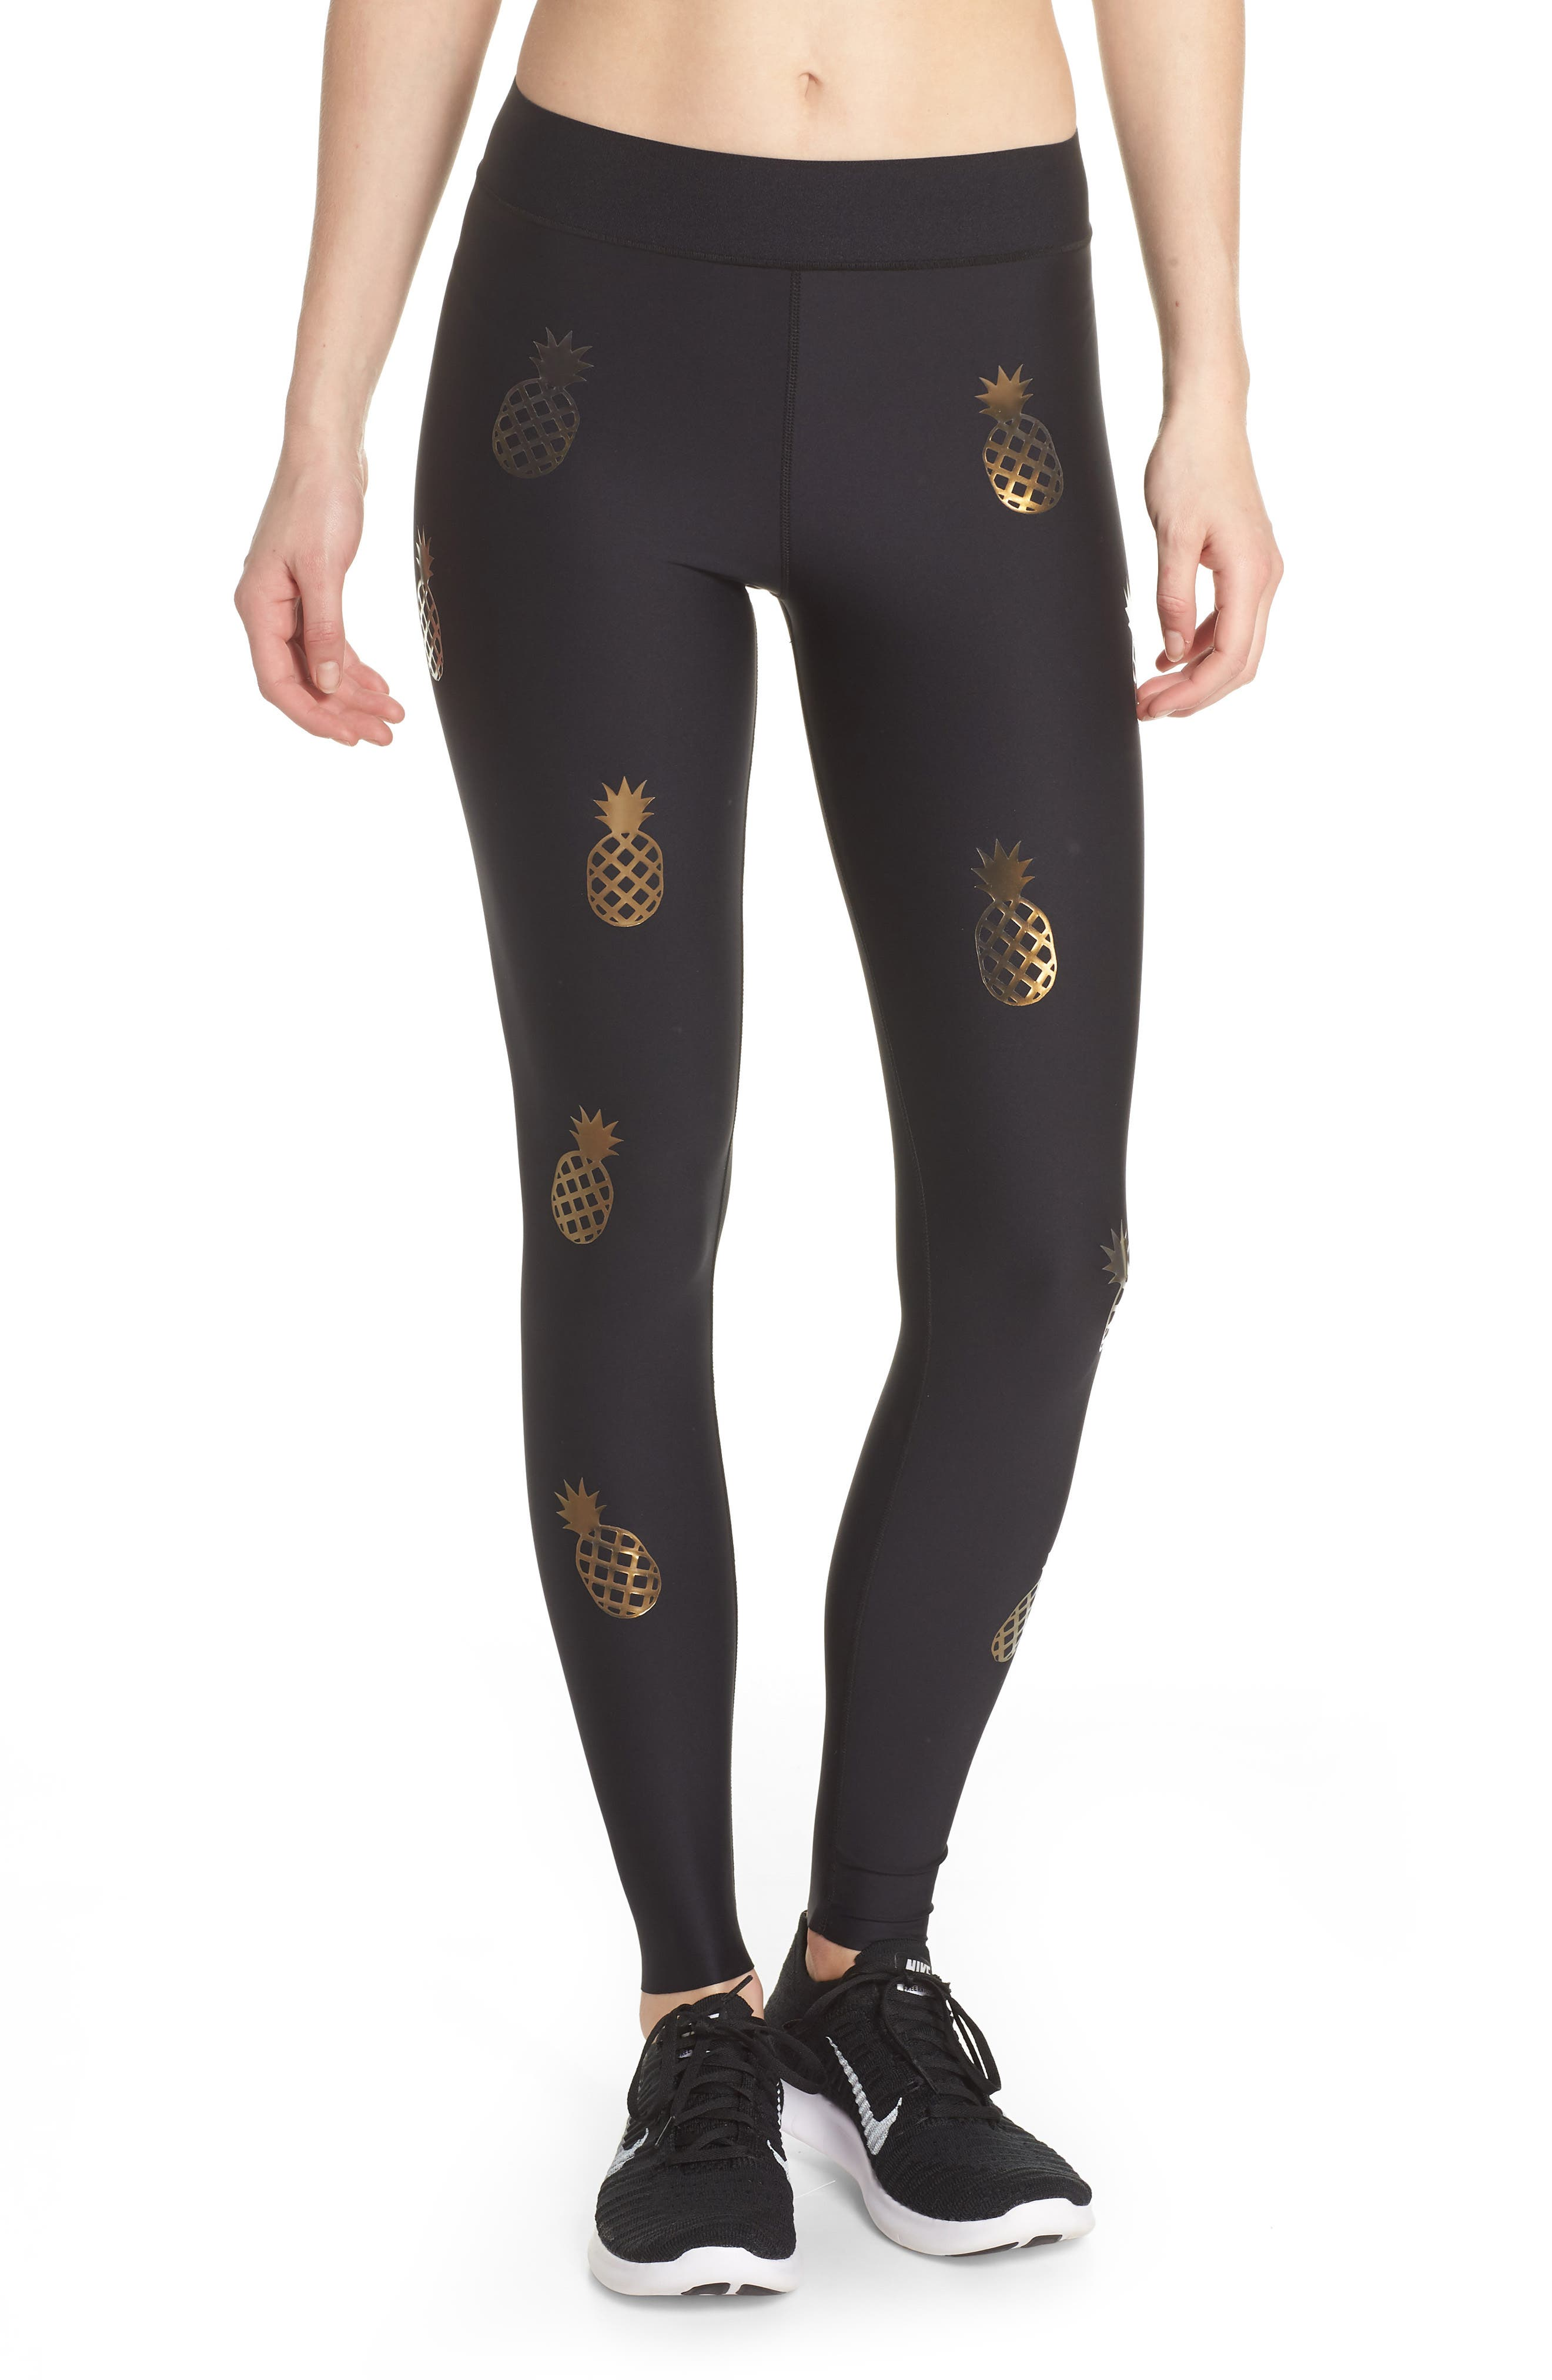 Ultra Pineapple Knockout Leggings,                         Main,                         color, Nero/ Iridescent Gold